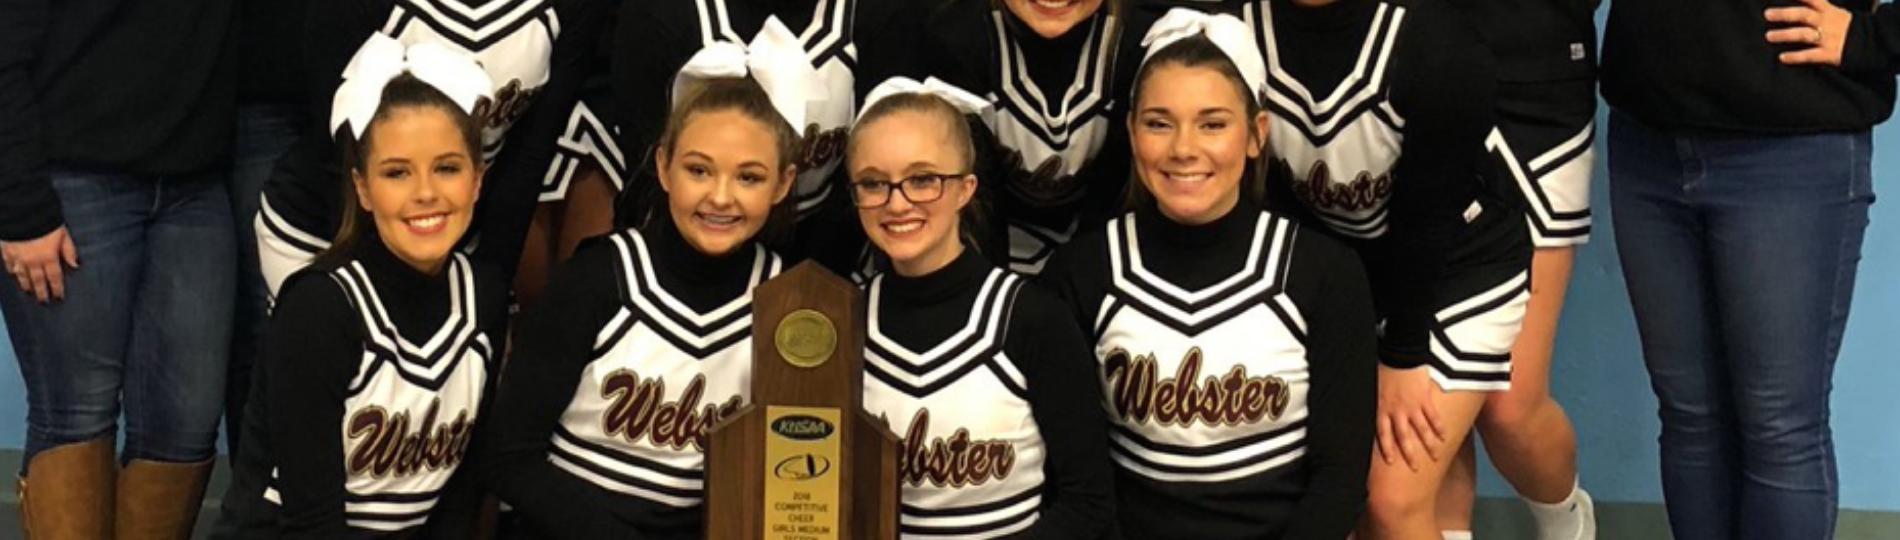 Cheerleaders KHSAA Section Champs